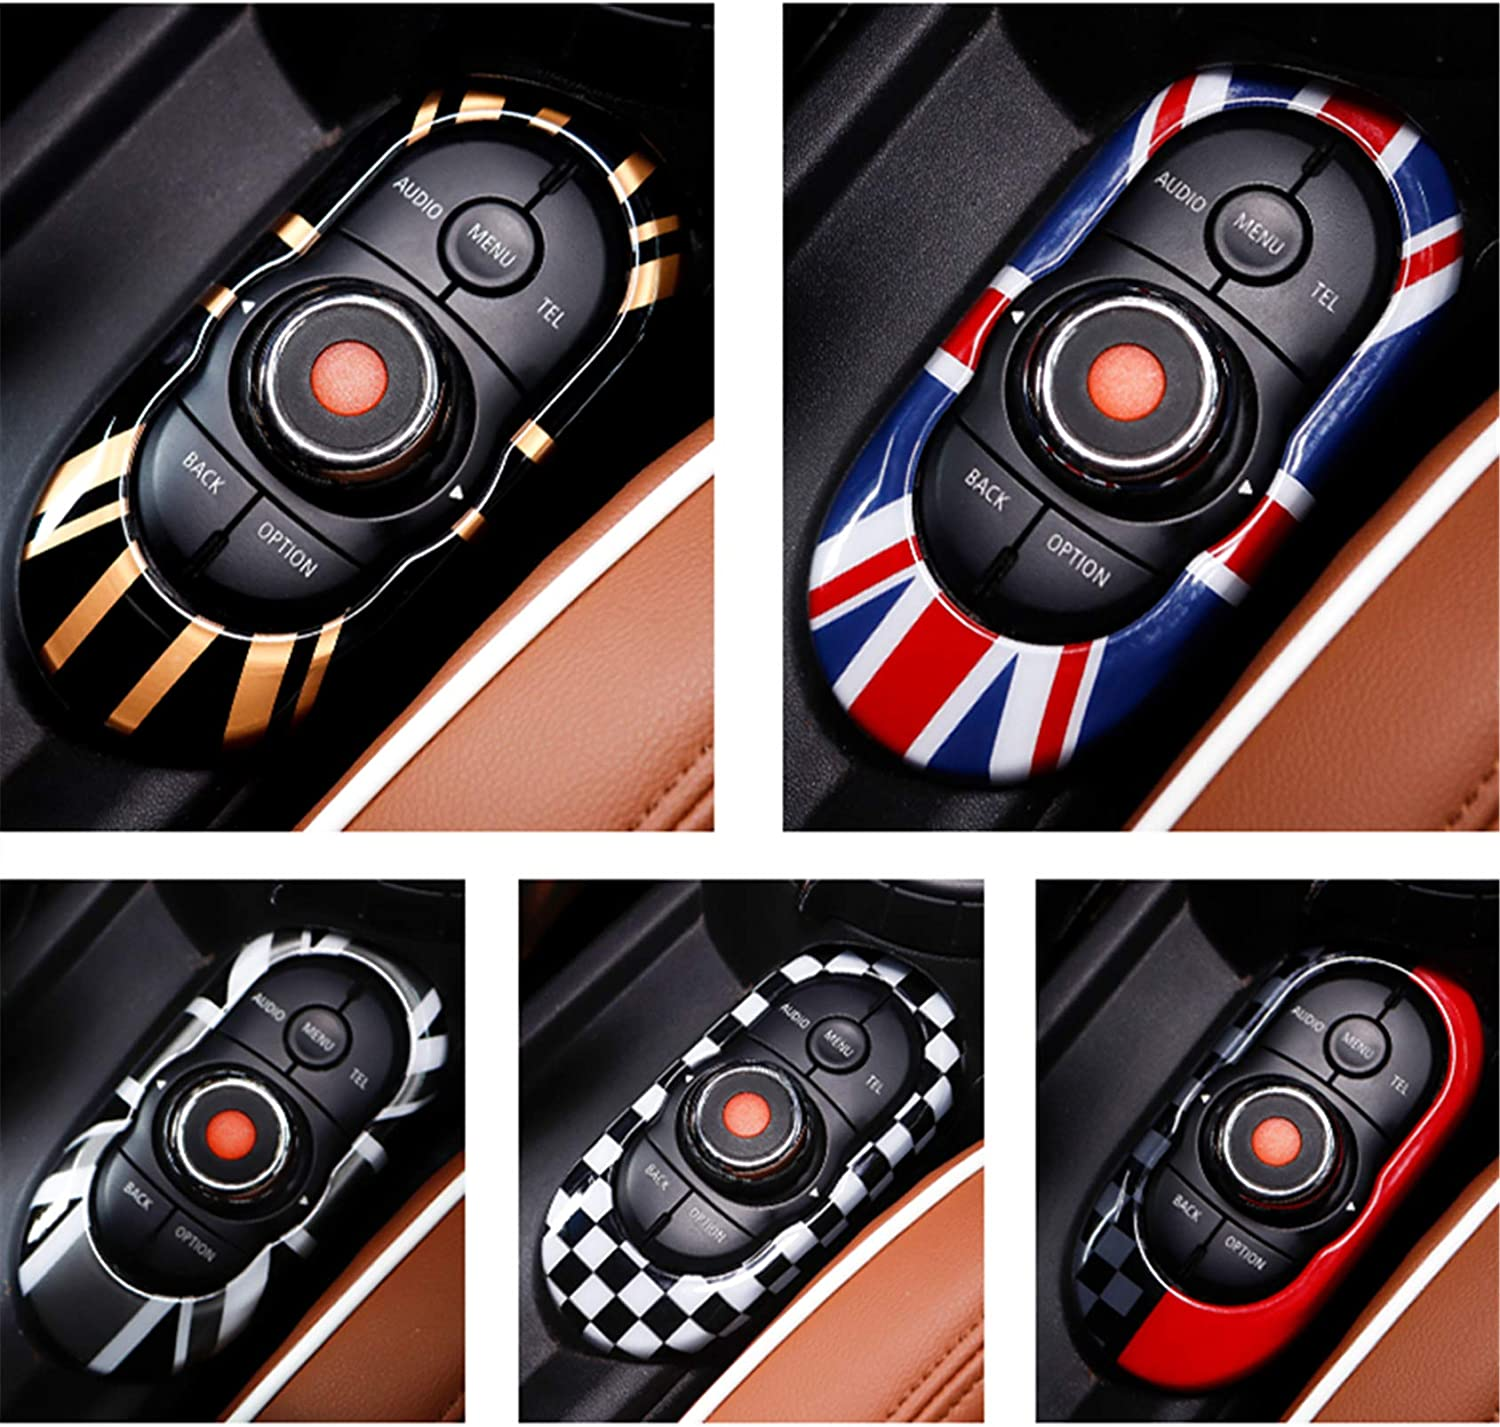 Side Wing Mirror Cap Without Light Hole Black White Check Flag Checkered ABS Sticker Cover Trim Cap for Mini Cooper ONE S JCW F Series F55 Hardtop F56 Hatchback F57 Covertible 2016+